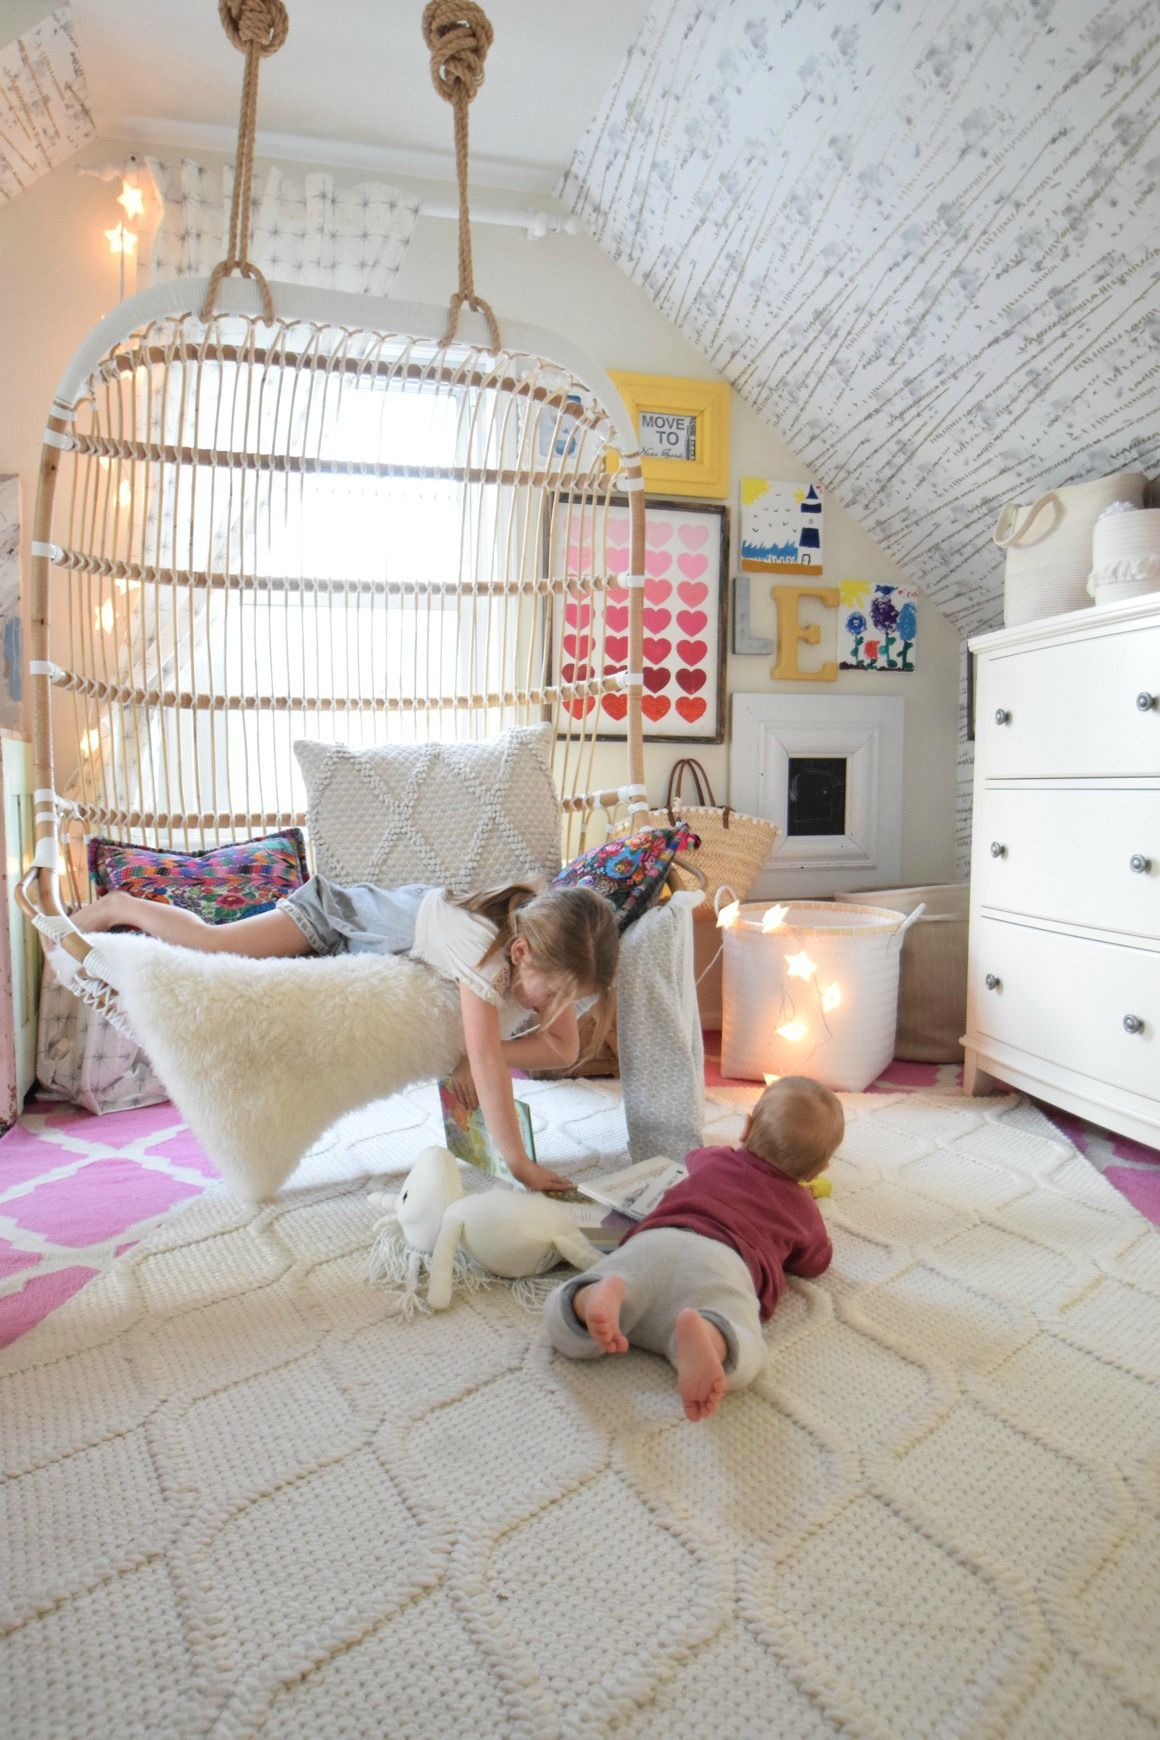 Wedding room decoration ideas 2018  Love in the form of our new Hanging Chair in   Kids rooms